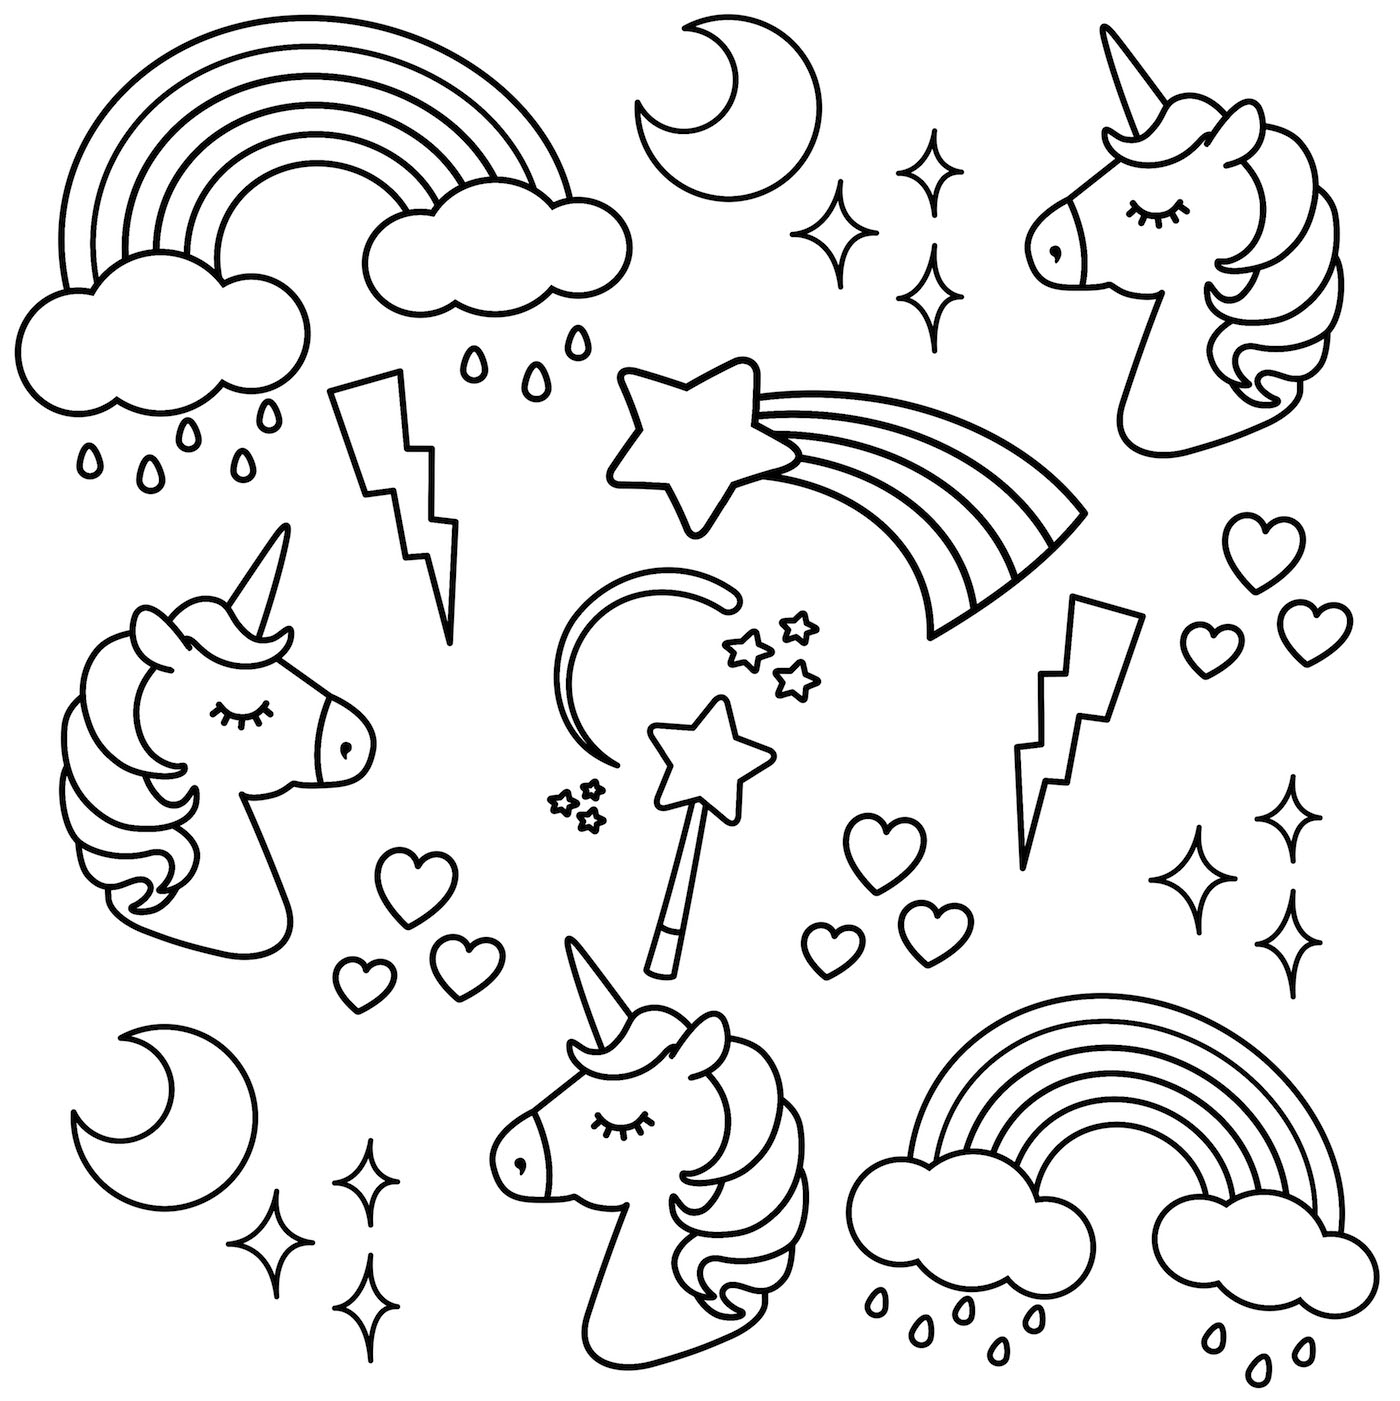 coloring pages of unicorns cute baby unicorn coloring page free printable coloring of unicorns pages coloring